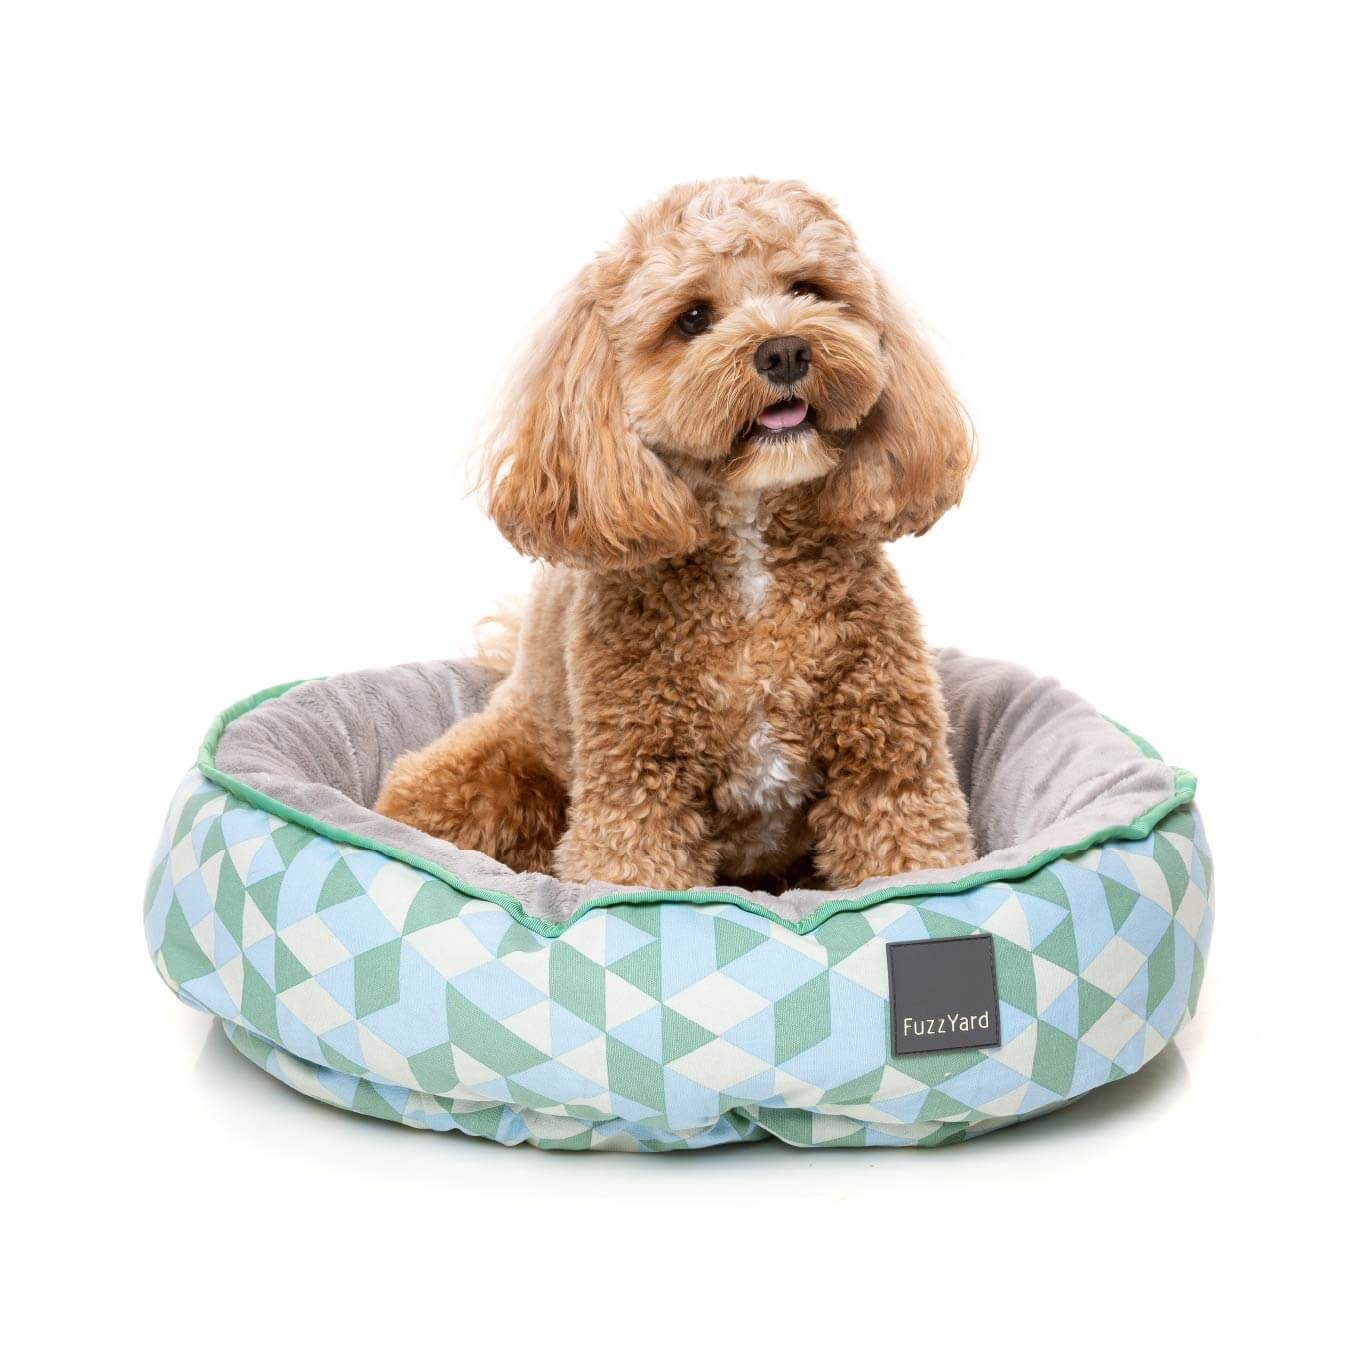 FuzzYard Peridot Reversible Pet Bed